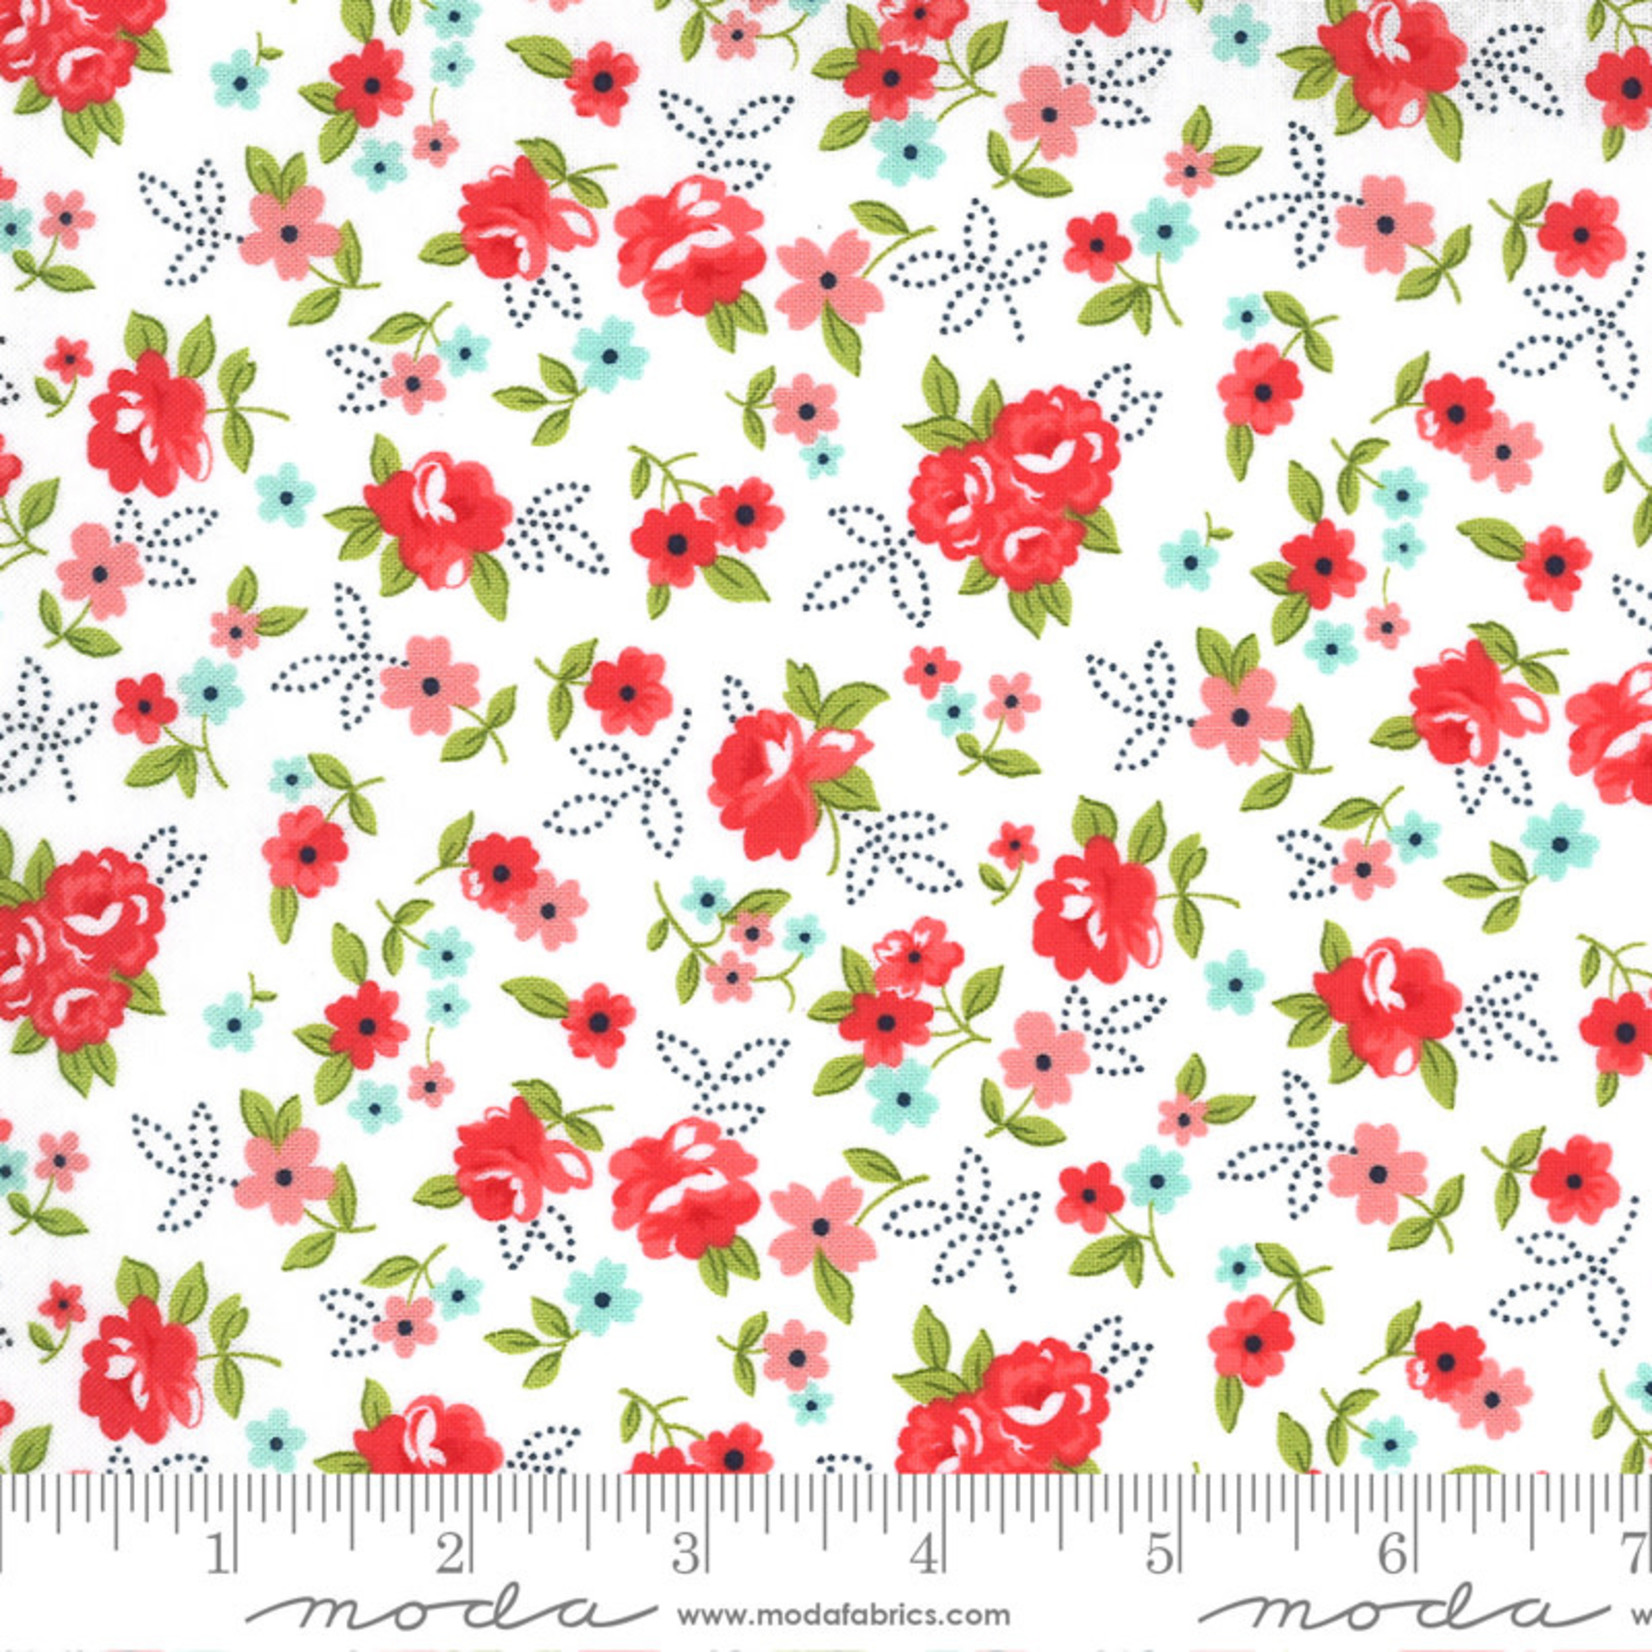 Bonnie & Camille Sunday Stroll, Little Floral, White Red 55222 21 $0.20 per cm or $20/m